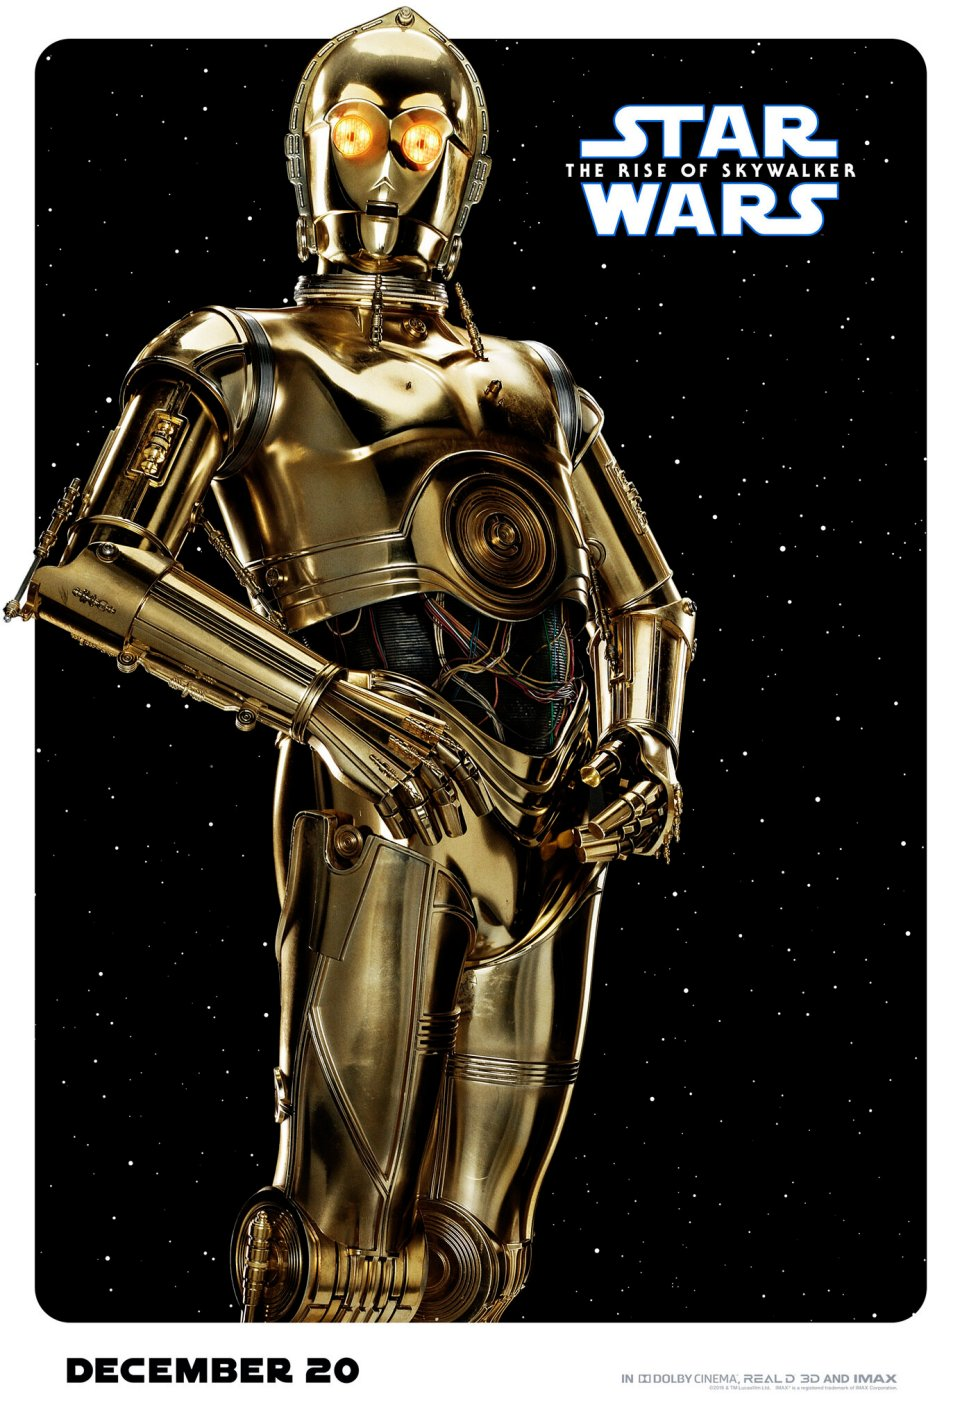 11-character-posters-released-for-star-wars-the-rise-of-skywalker5.jpg